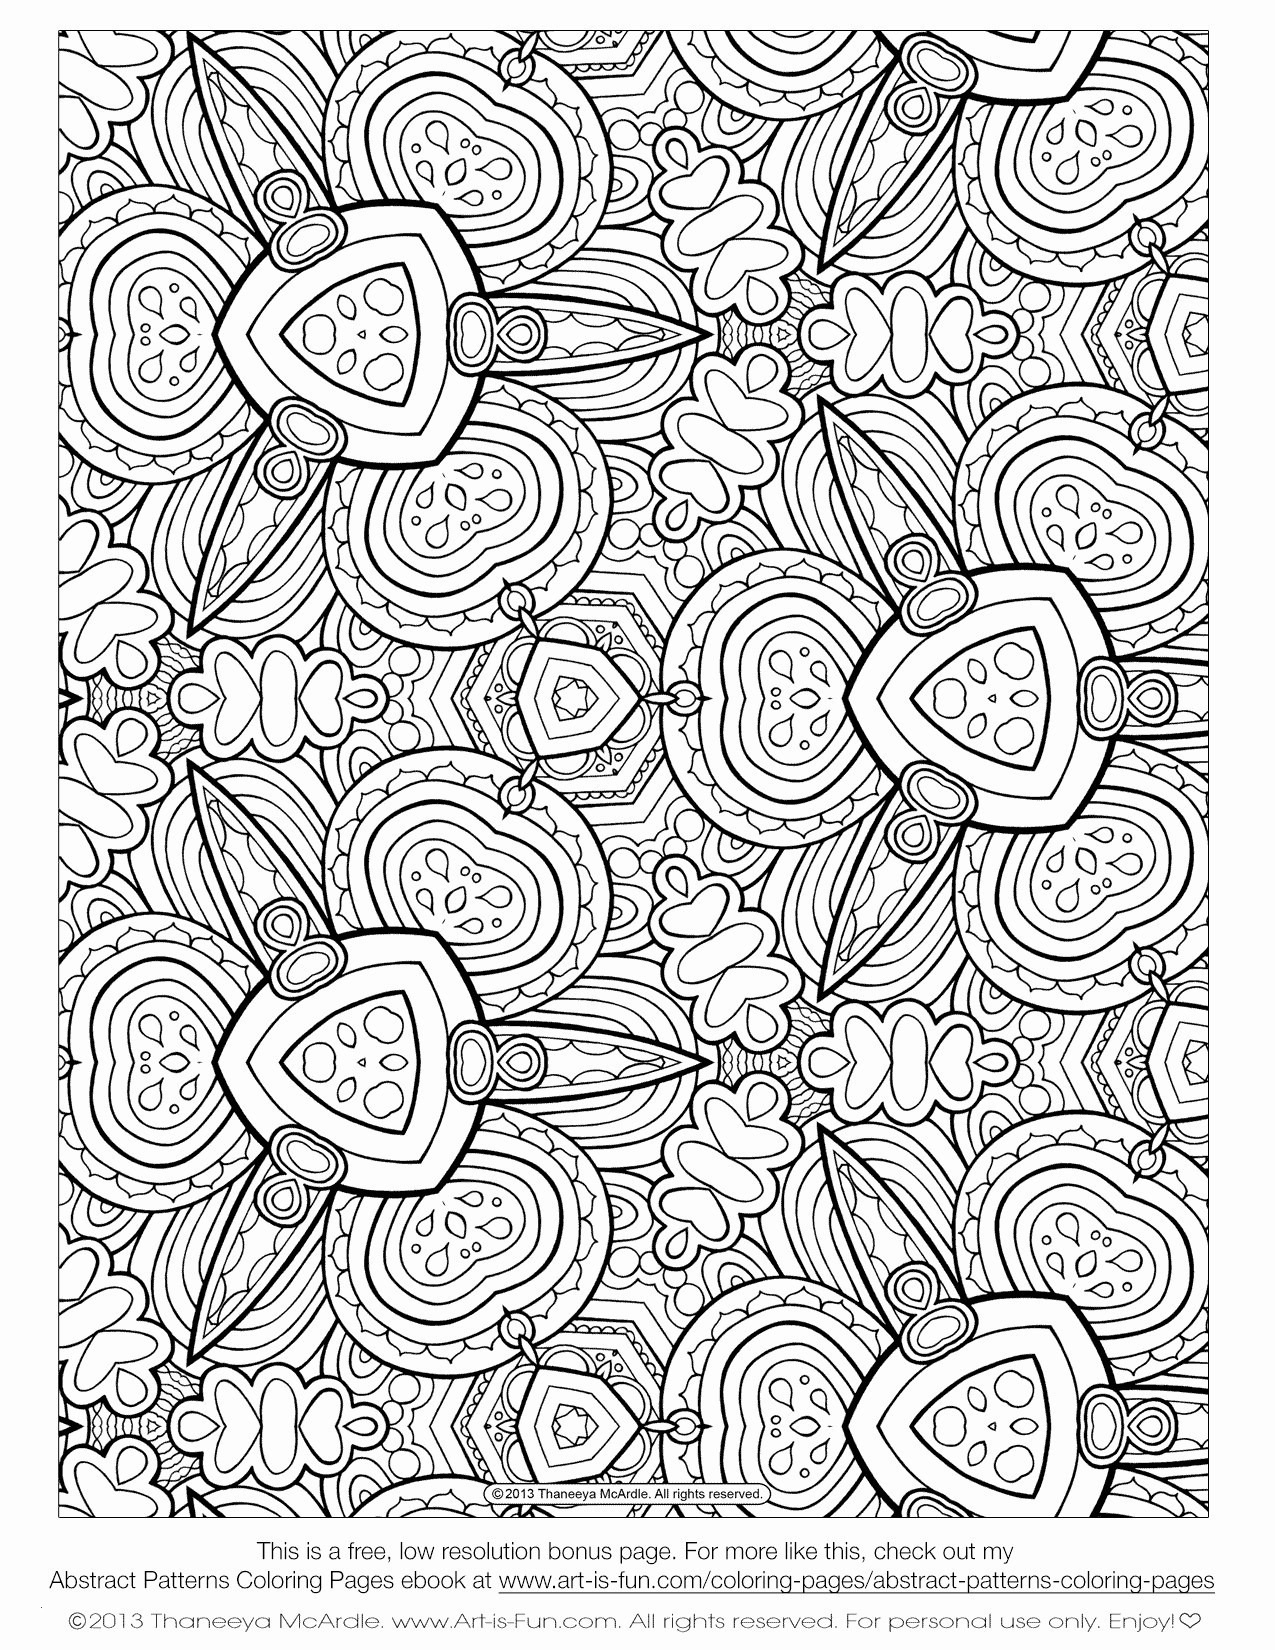 Zodiac Signs Coloring Pages to Print | Free Coloring Sheets